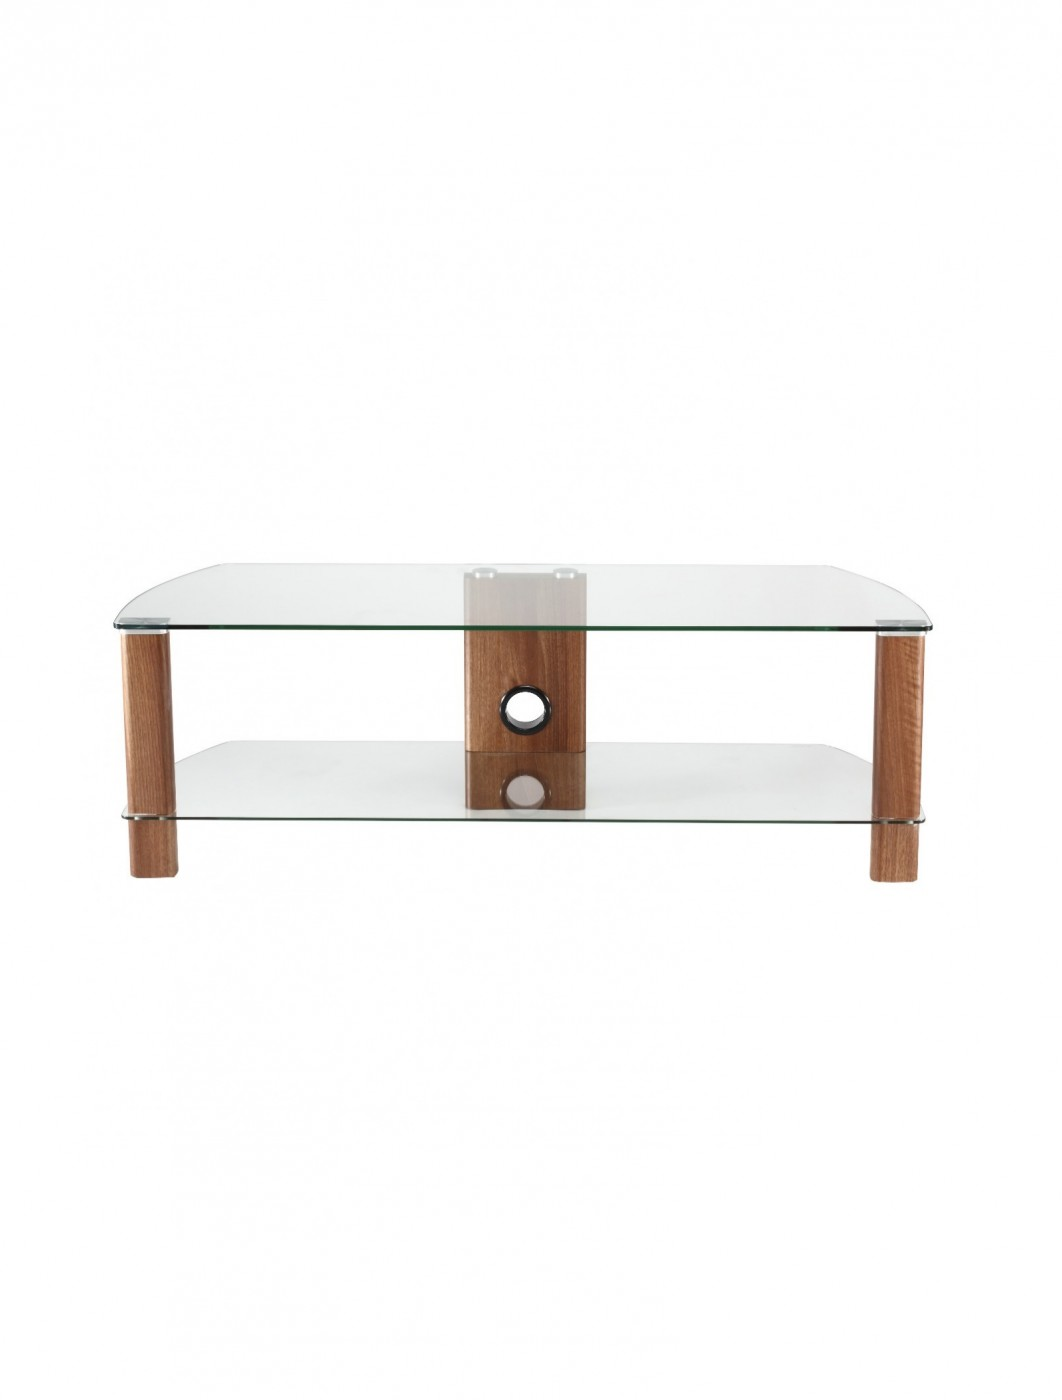 Alphason Century TV Stand ADCE1200 WAL 121 TV Mounts